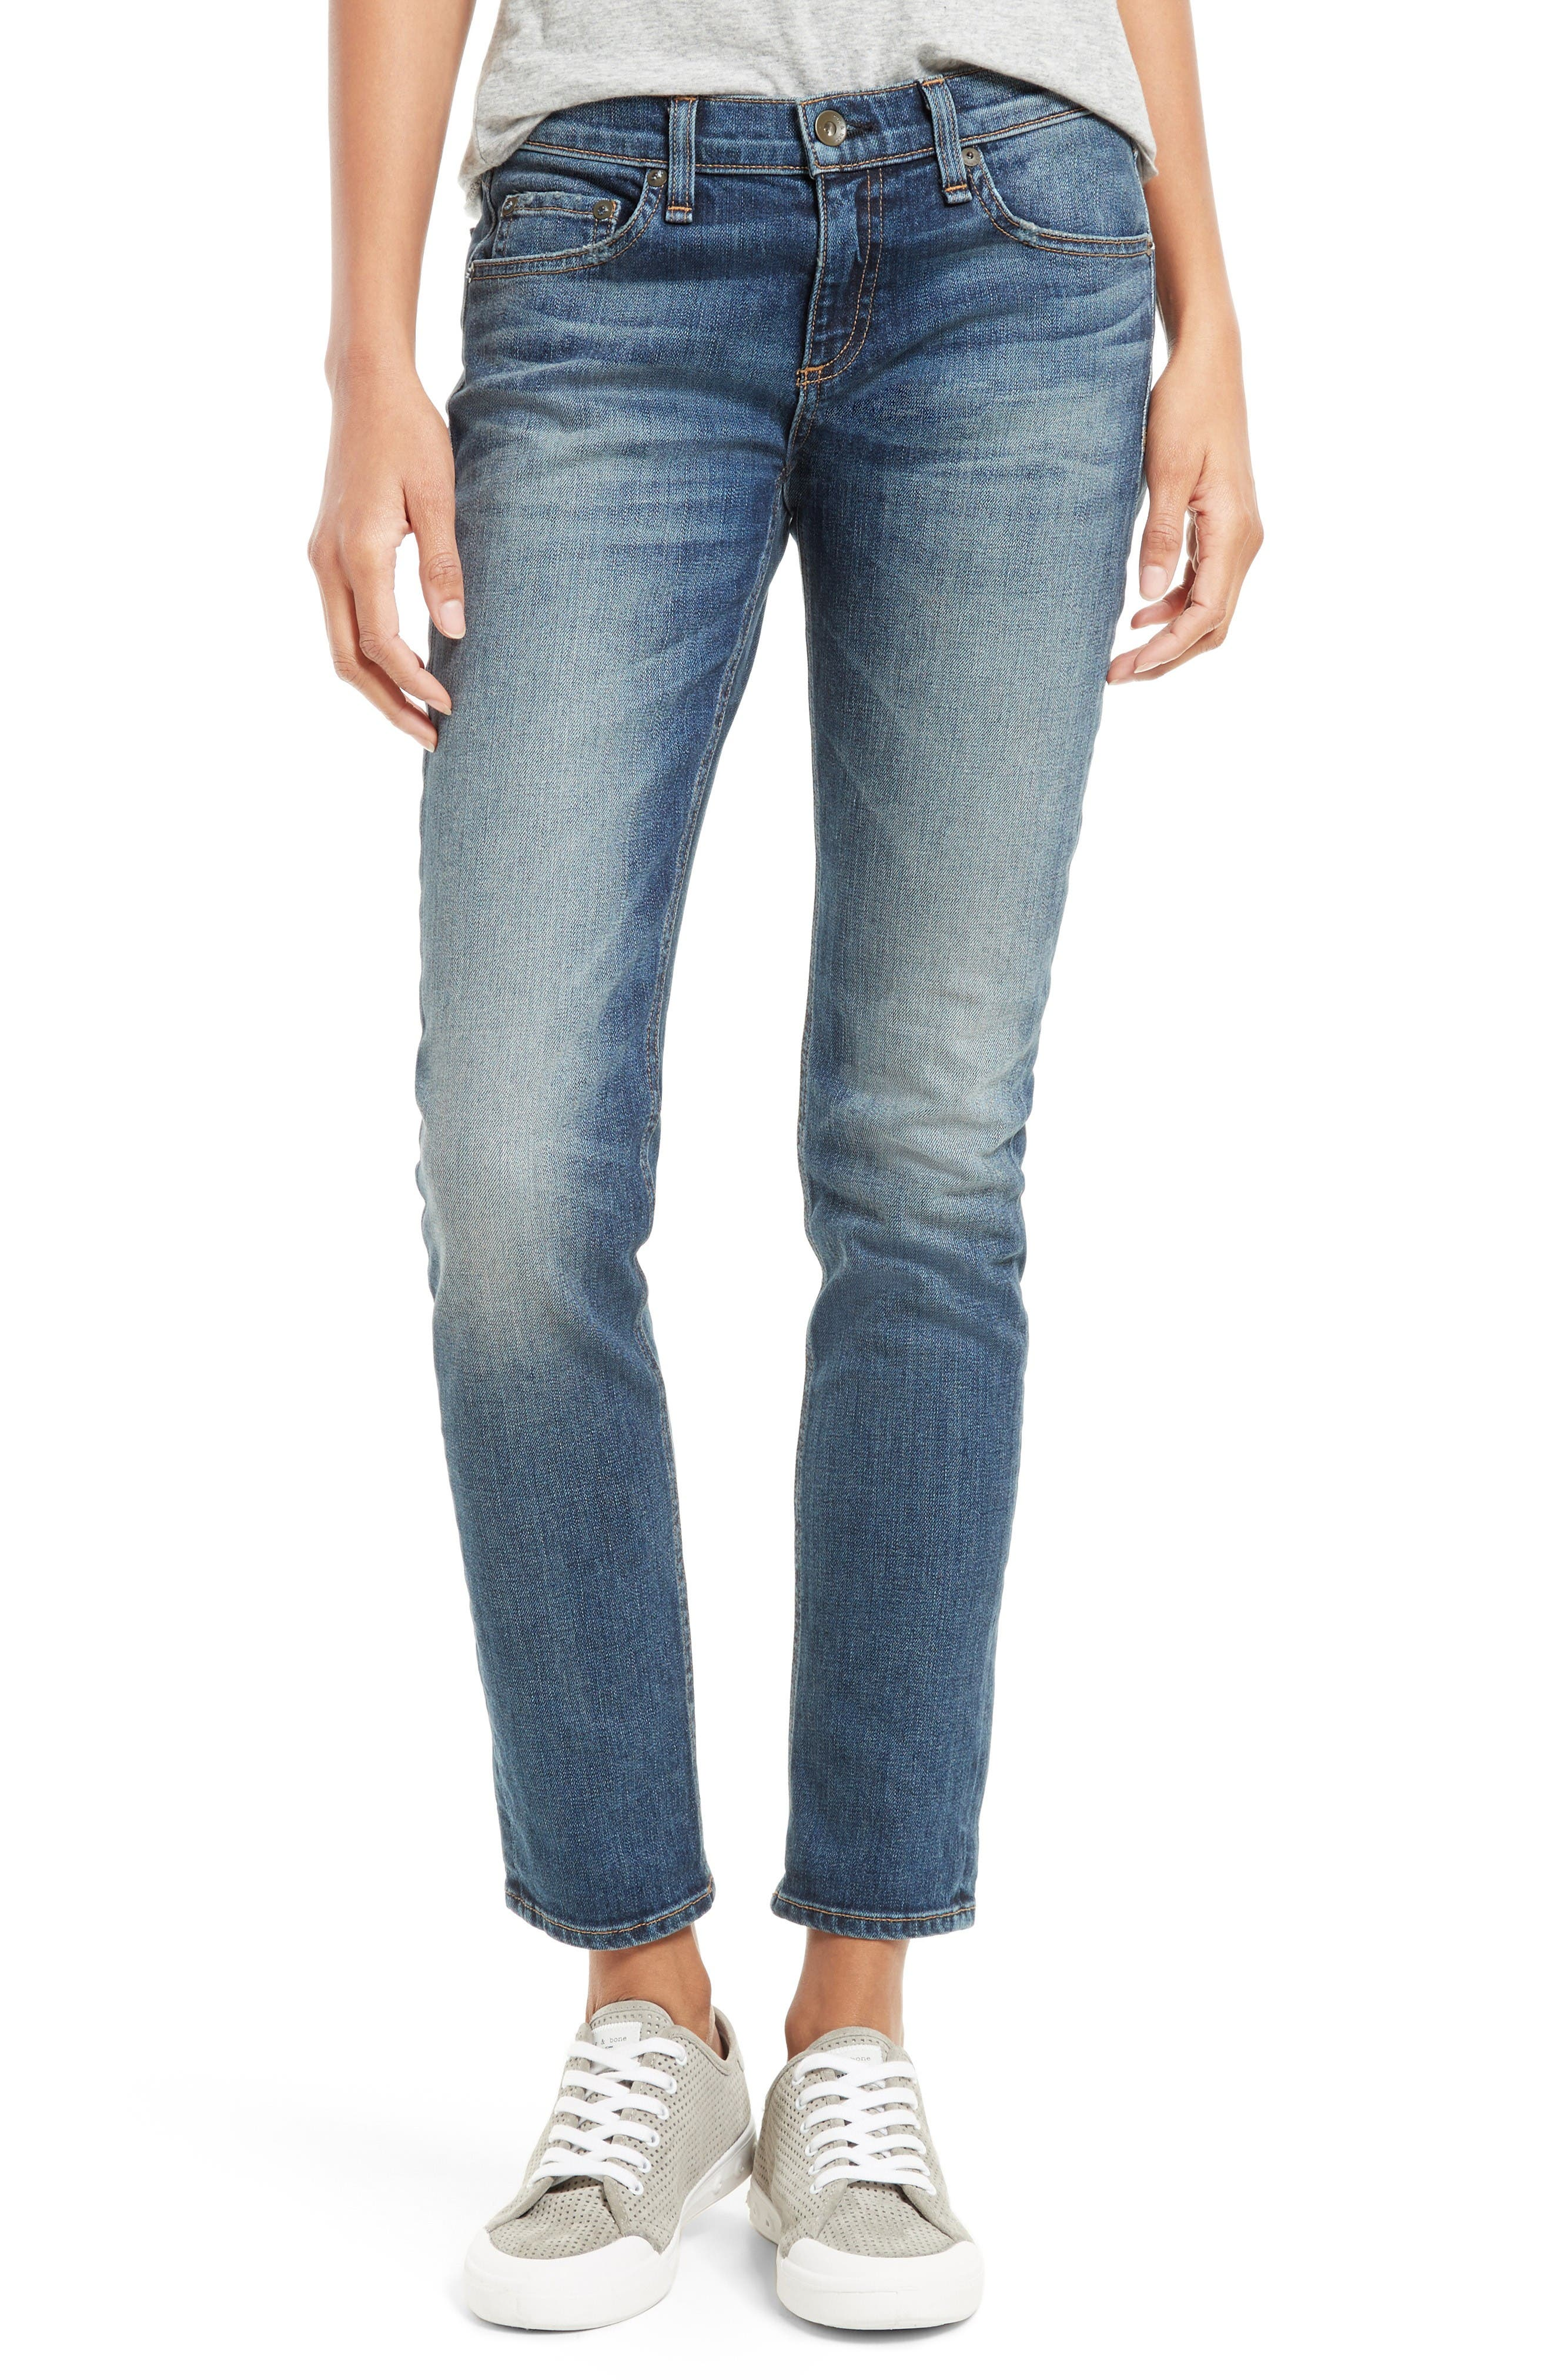 Main Image - rag & bone/JEAN The Dre Slim Boyfriend Jeans (Bard)